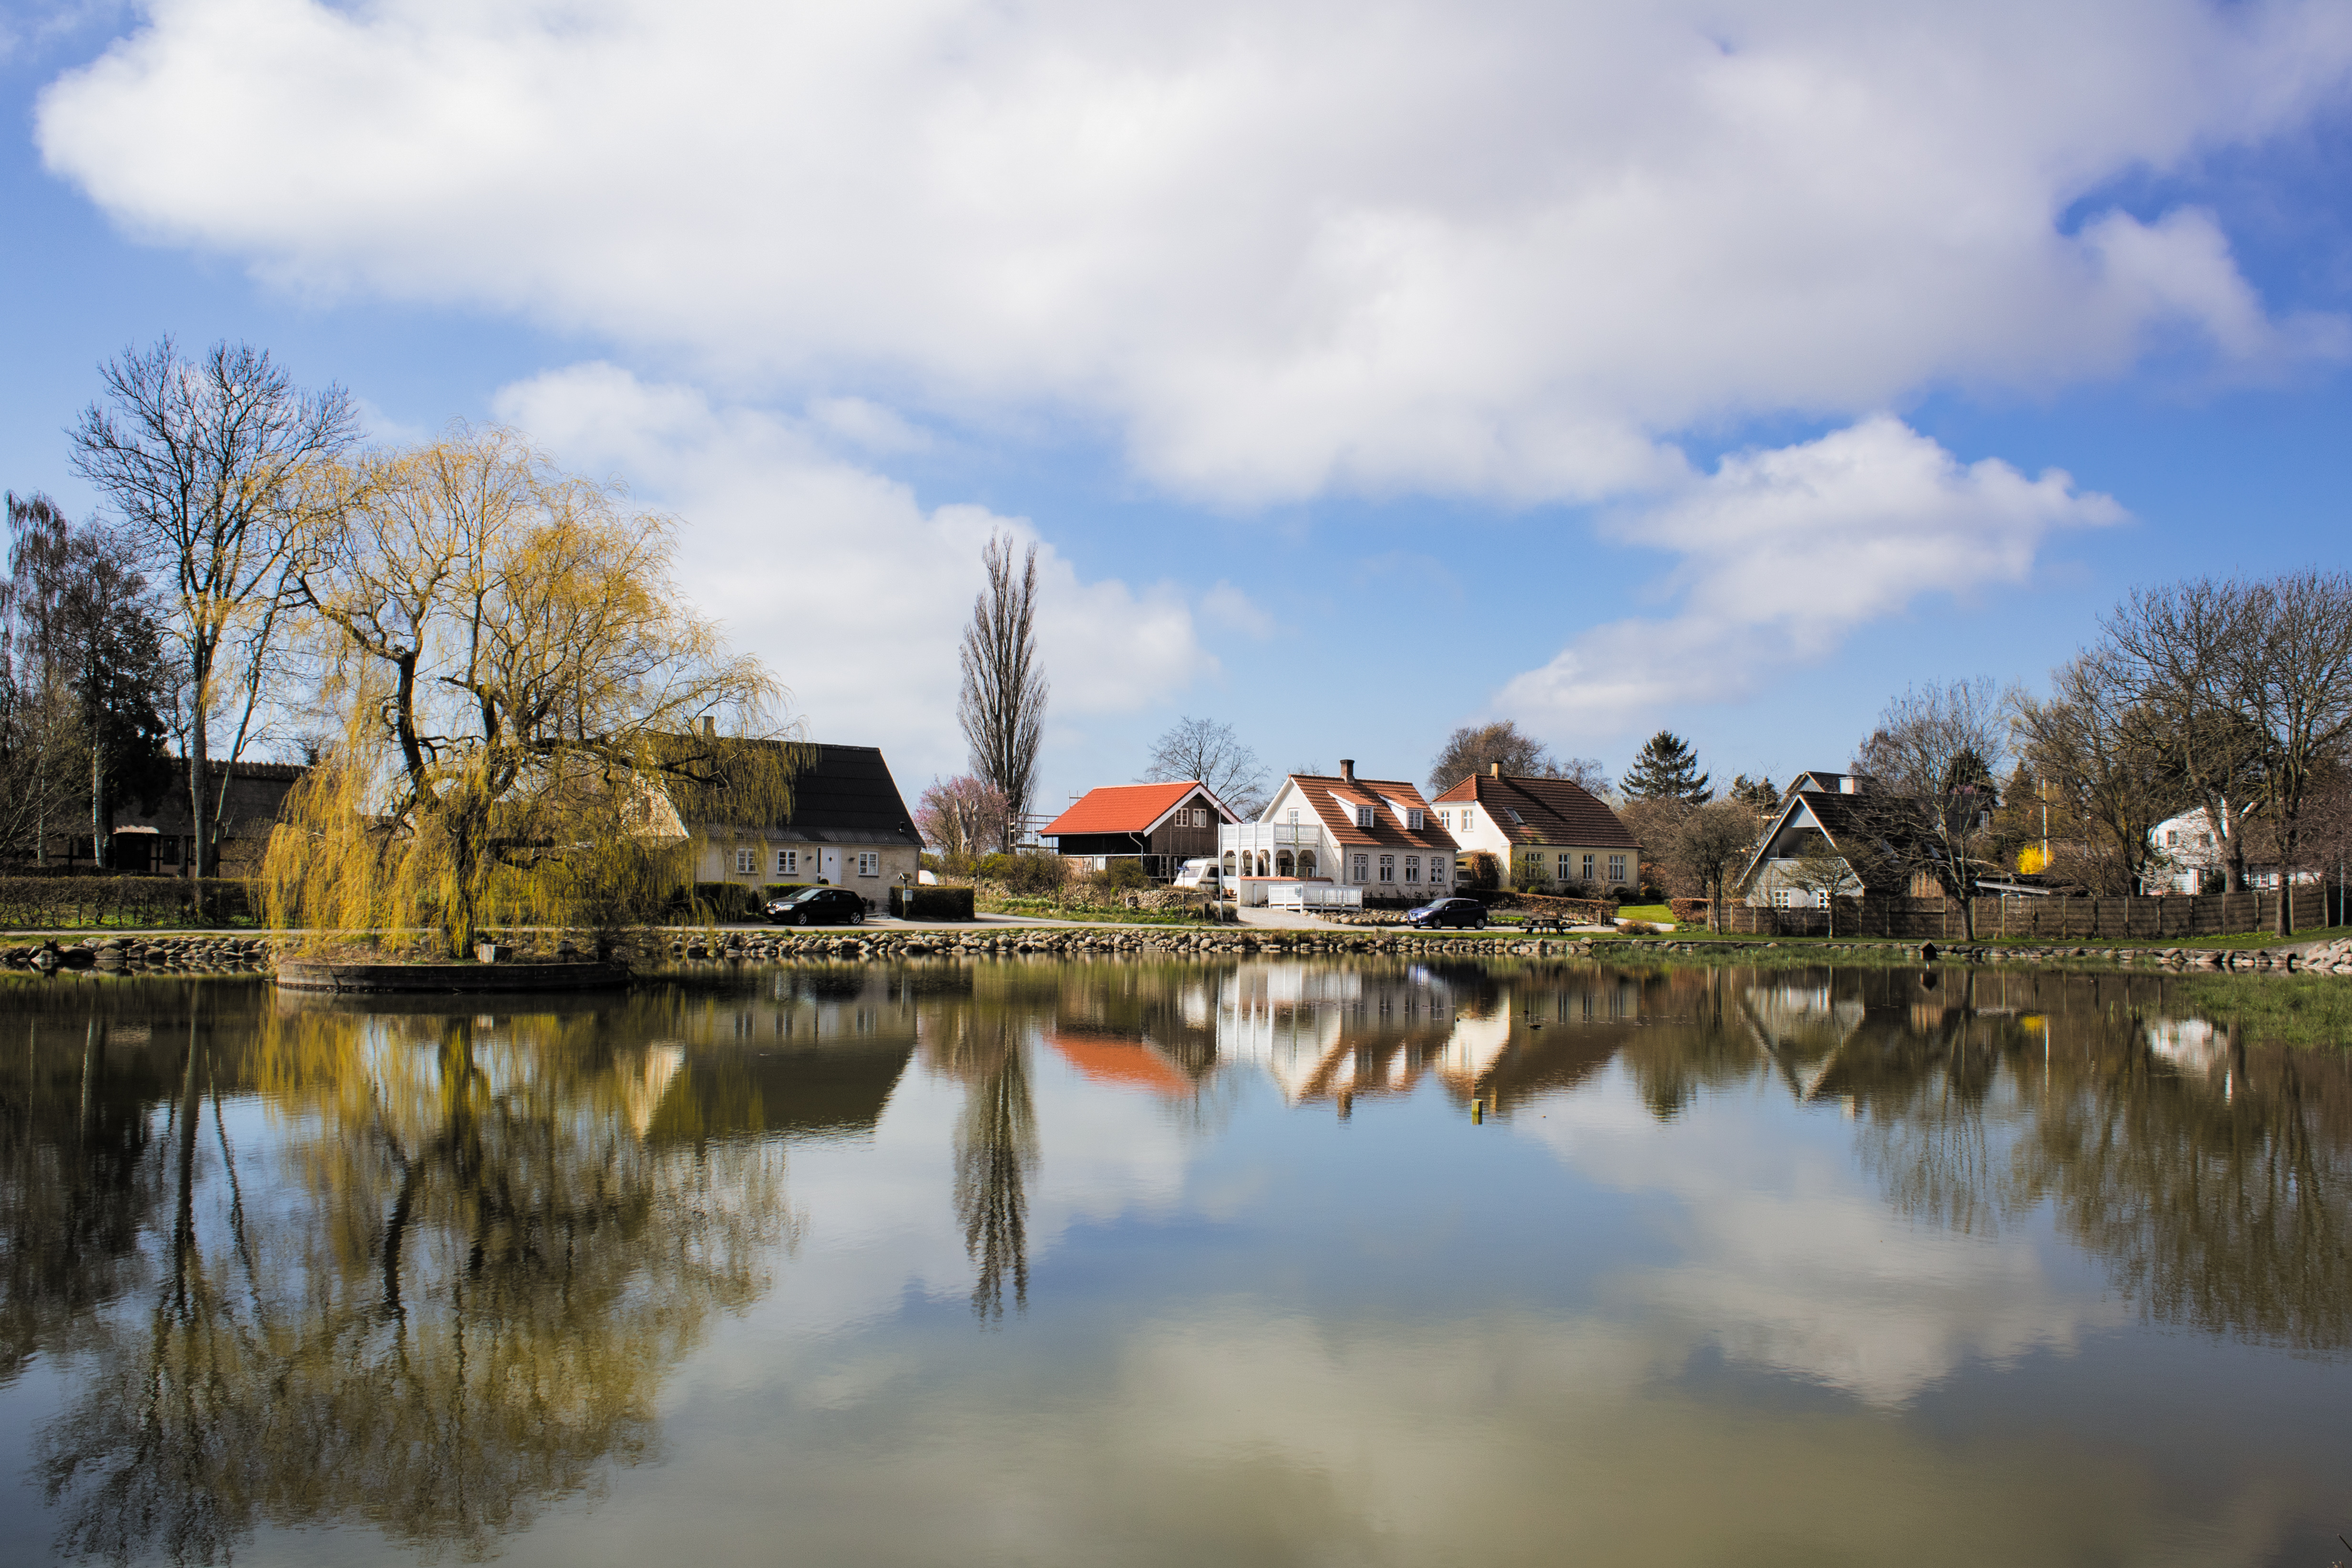 Peaceful scene in Denmark reflected in a pond